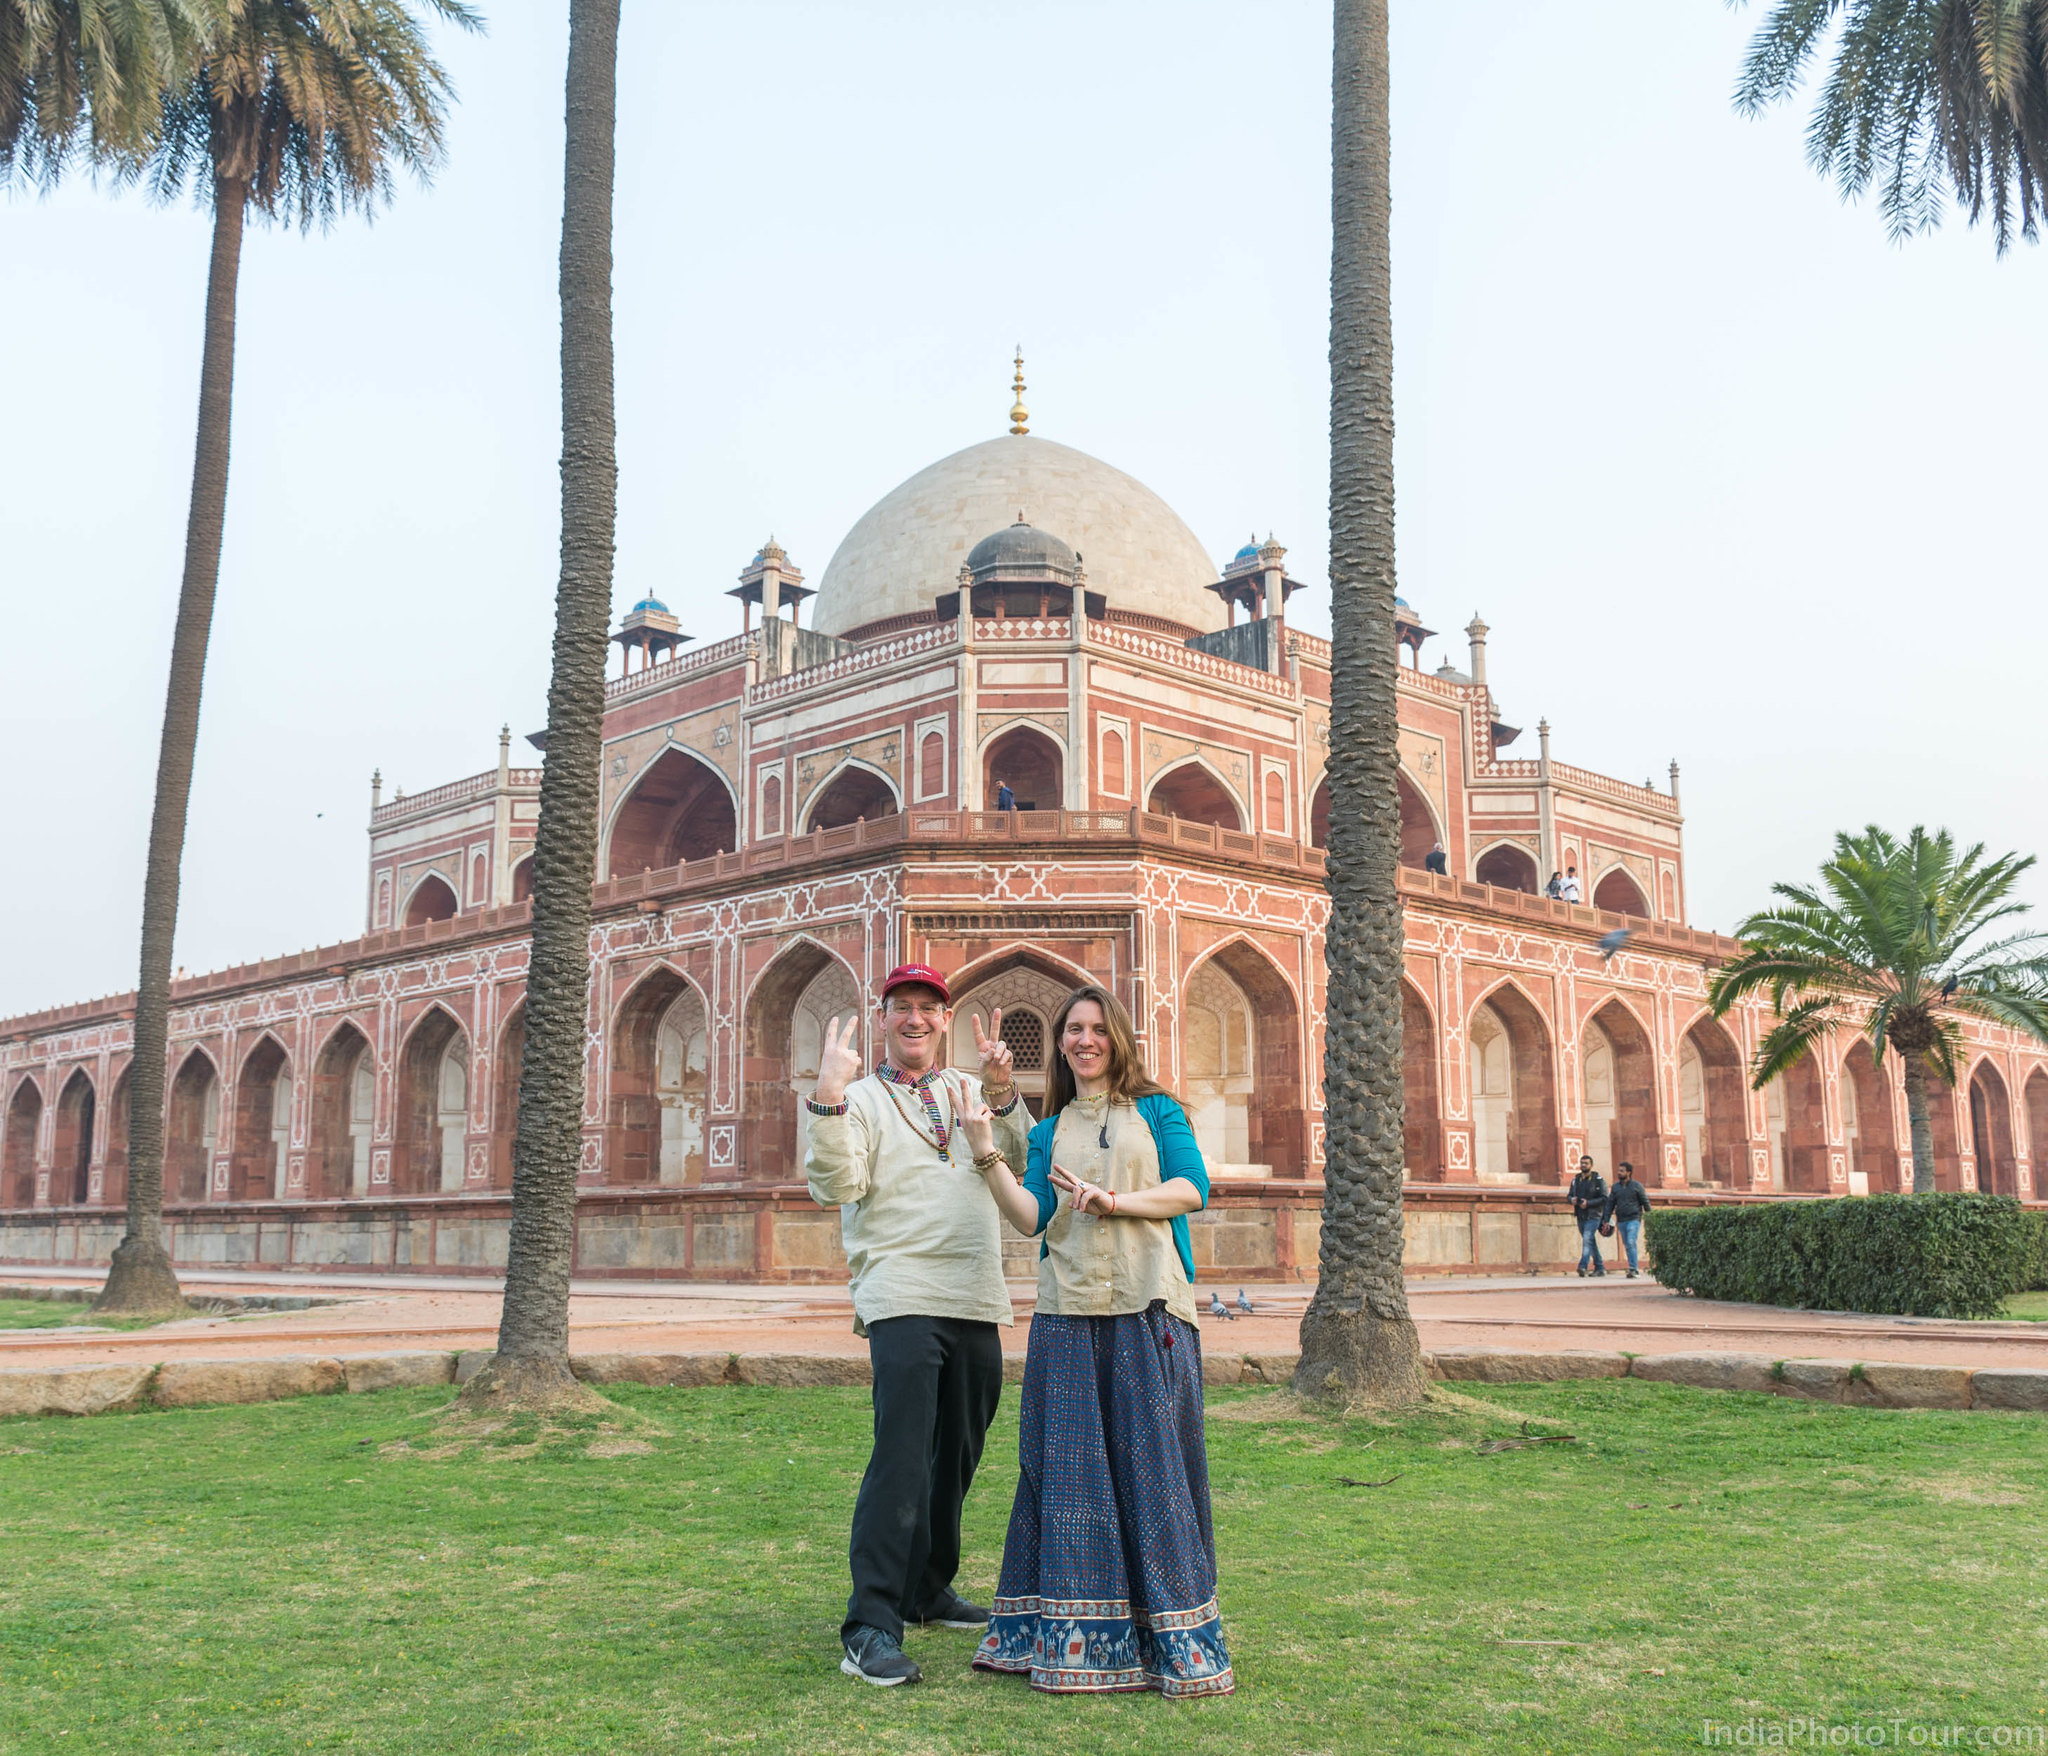 Some fun in front of Humayun's Tomb